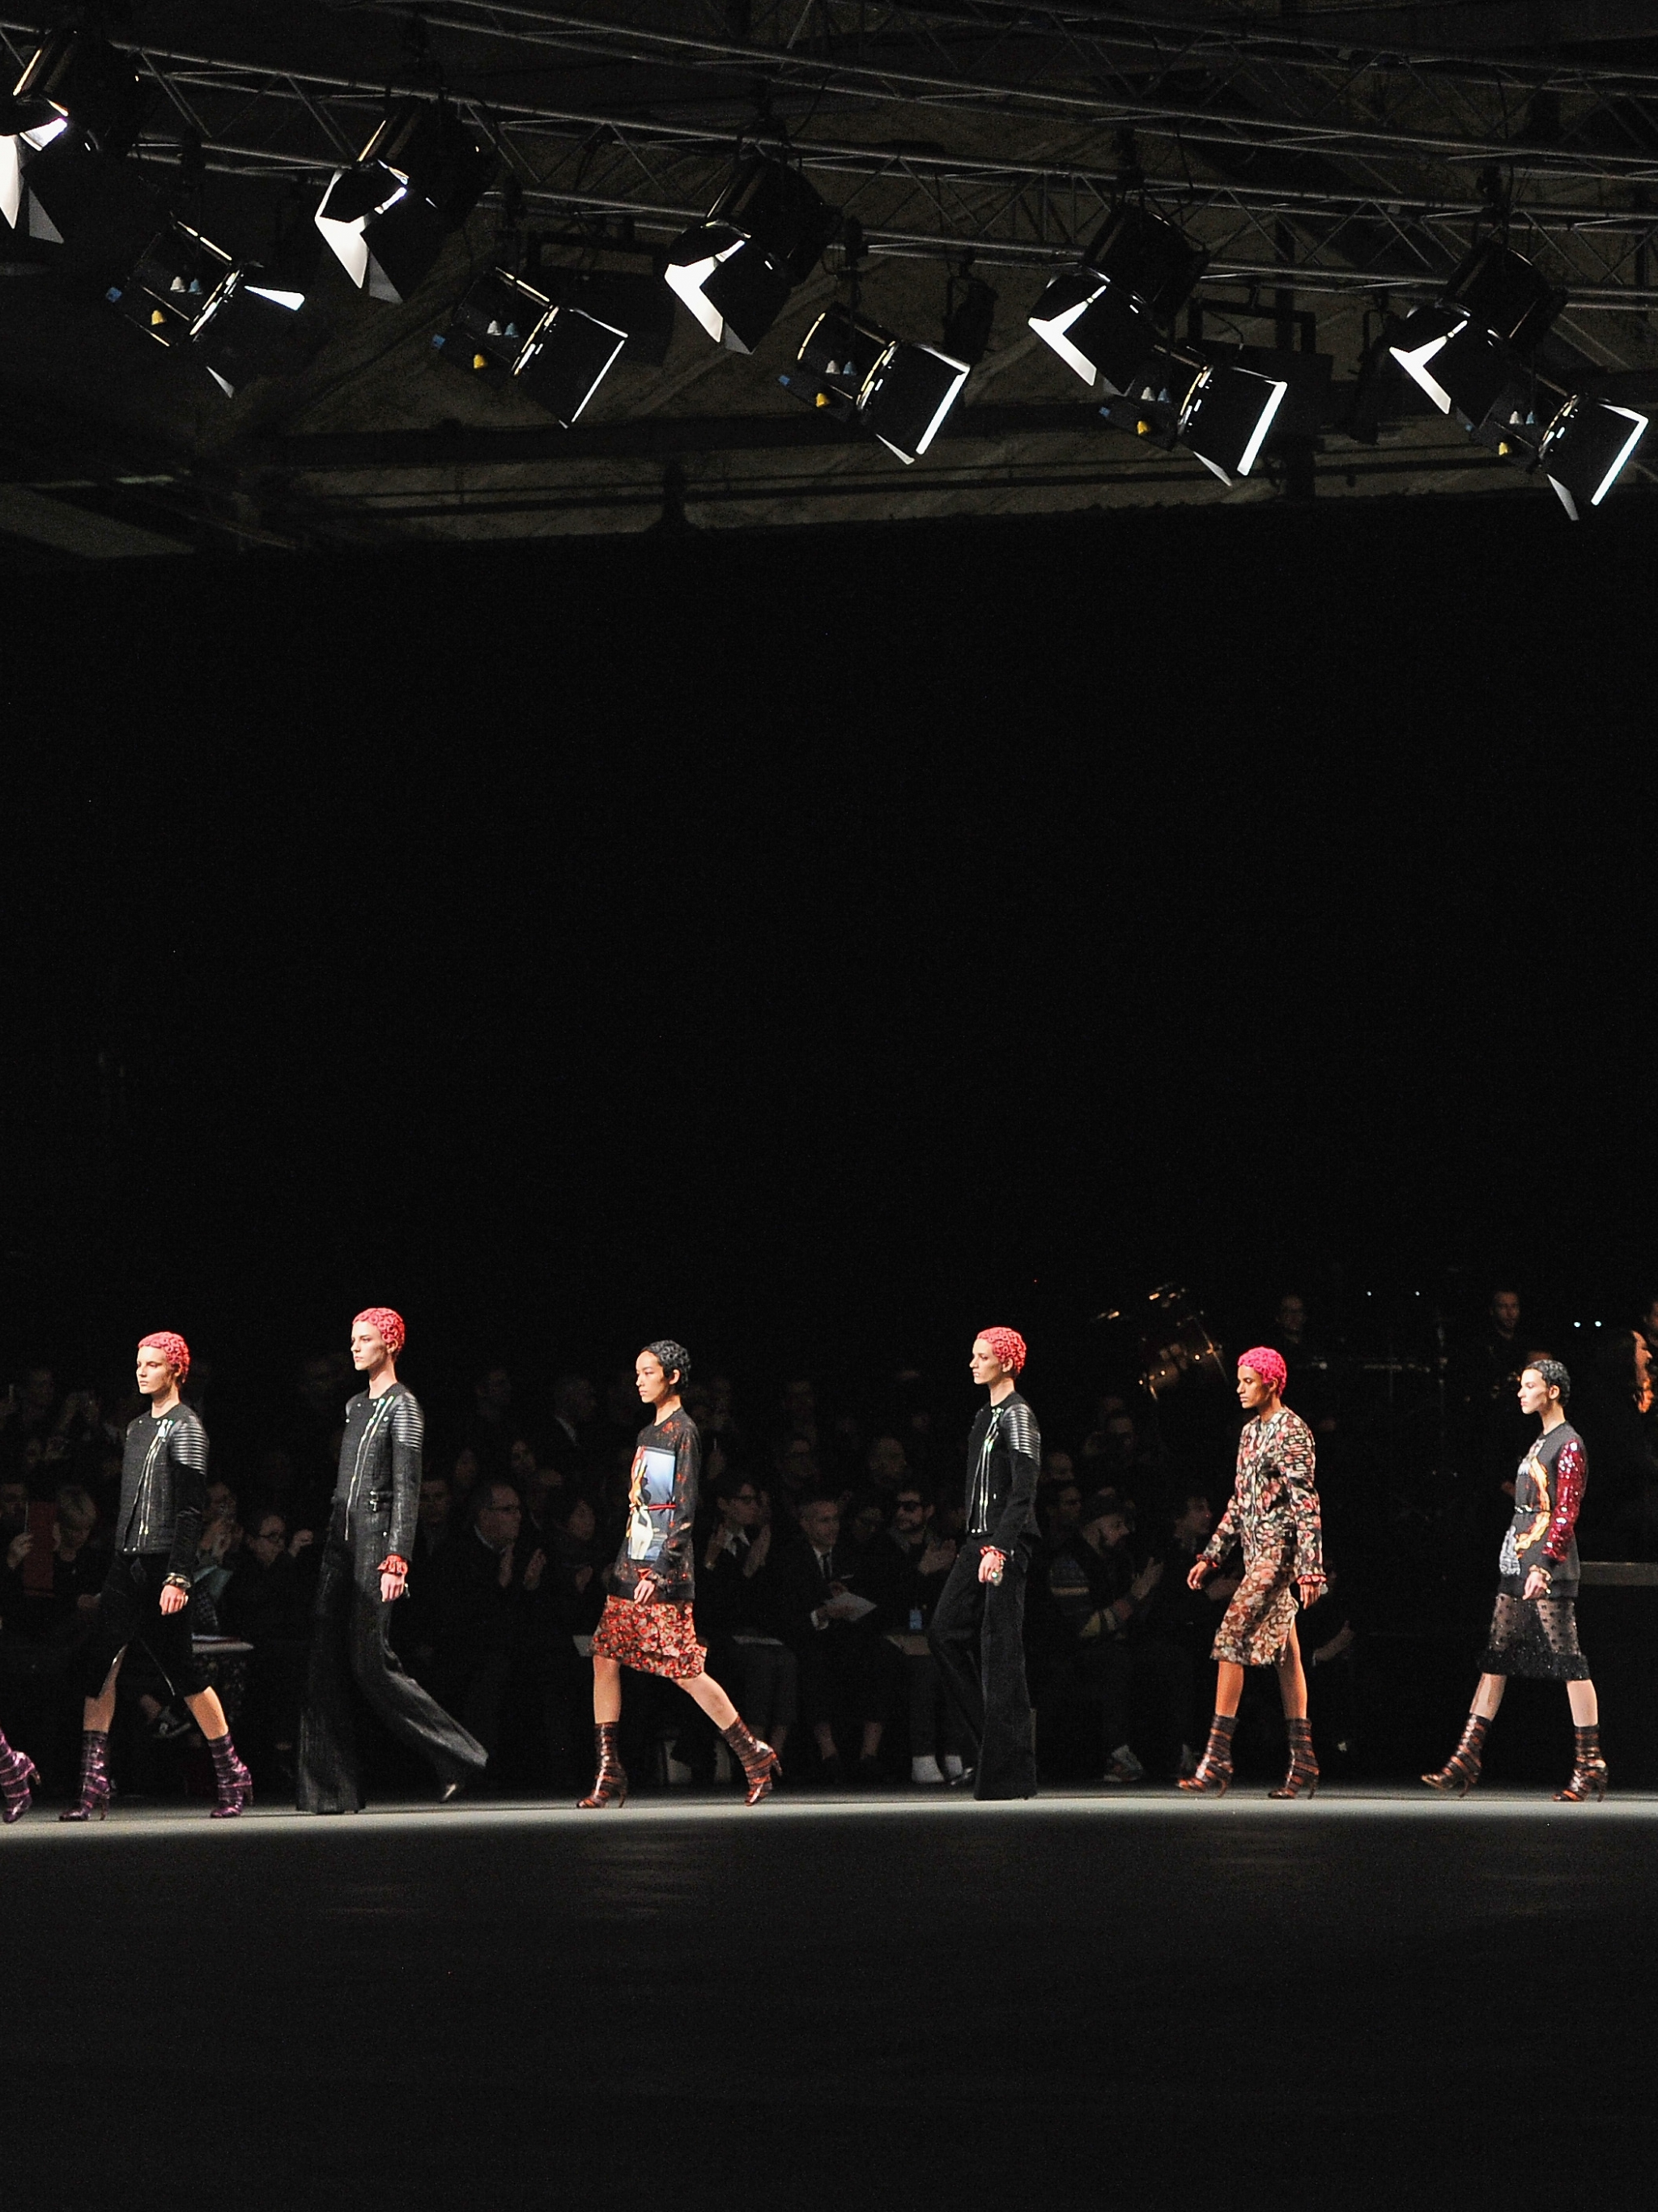 download Givenchy fashion show wallpapers and images 2048x2732